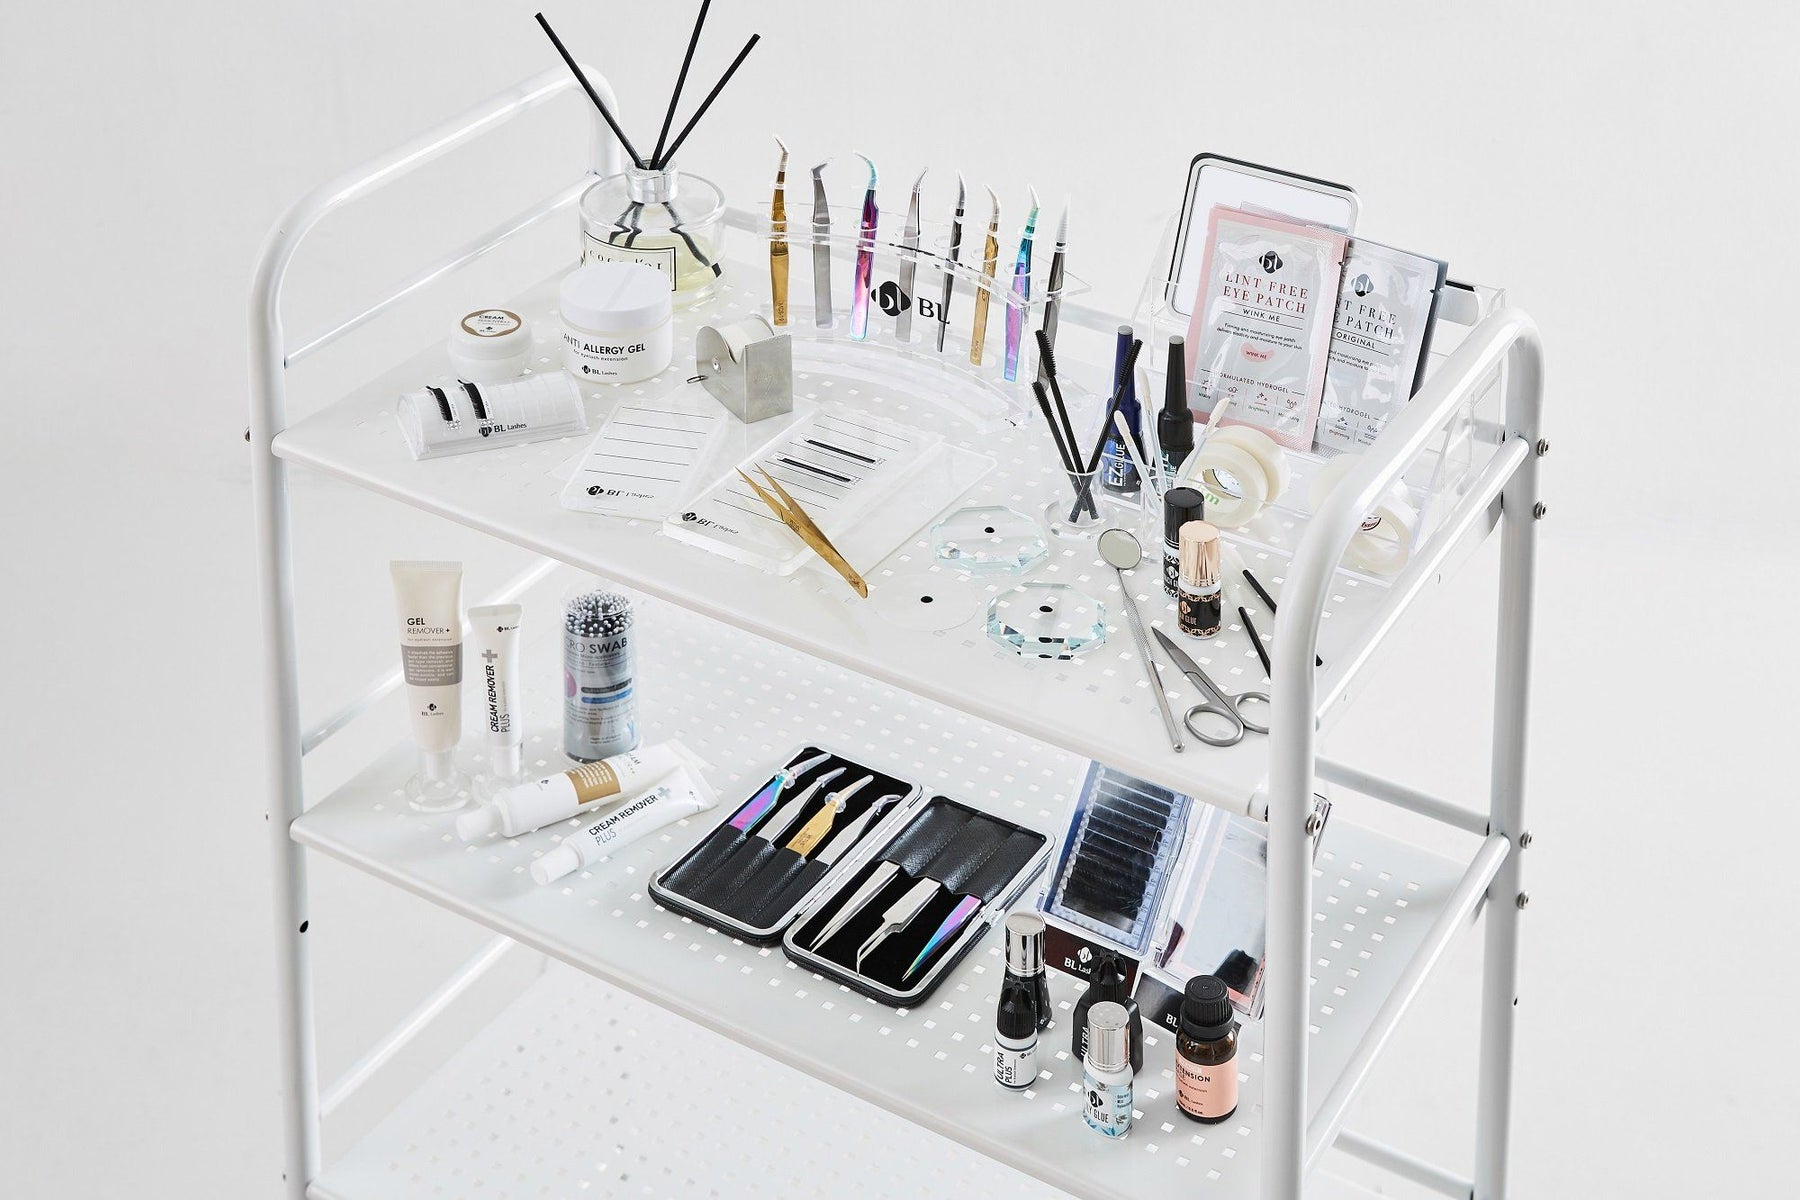 BL Eyelash Extension Supplies 101 - Your Complete Guide